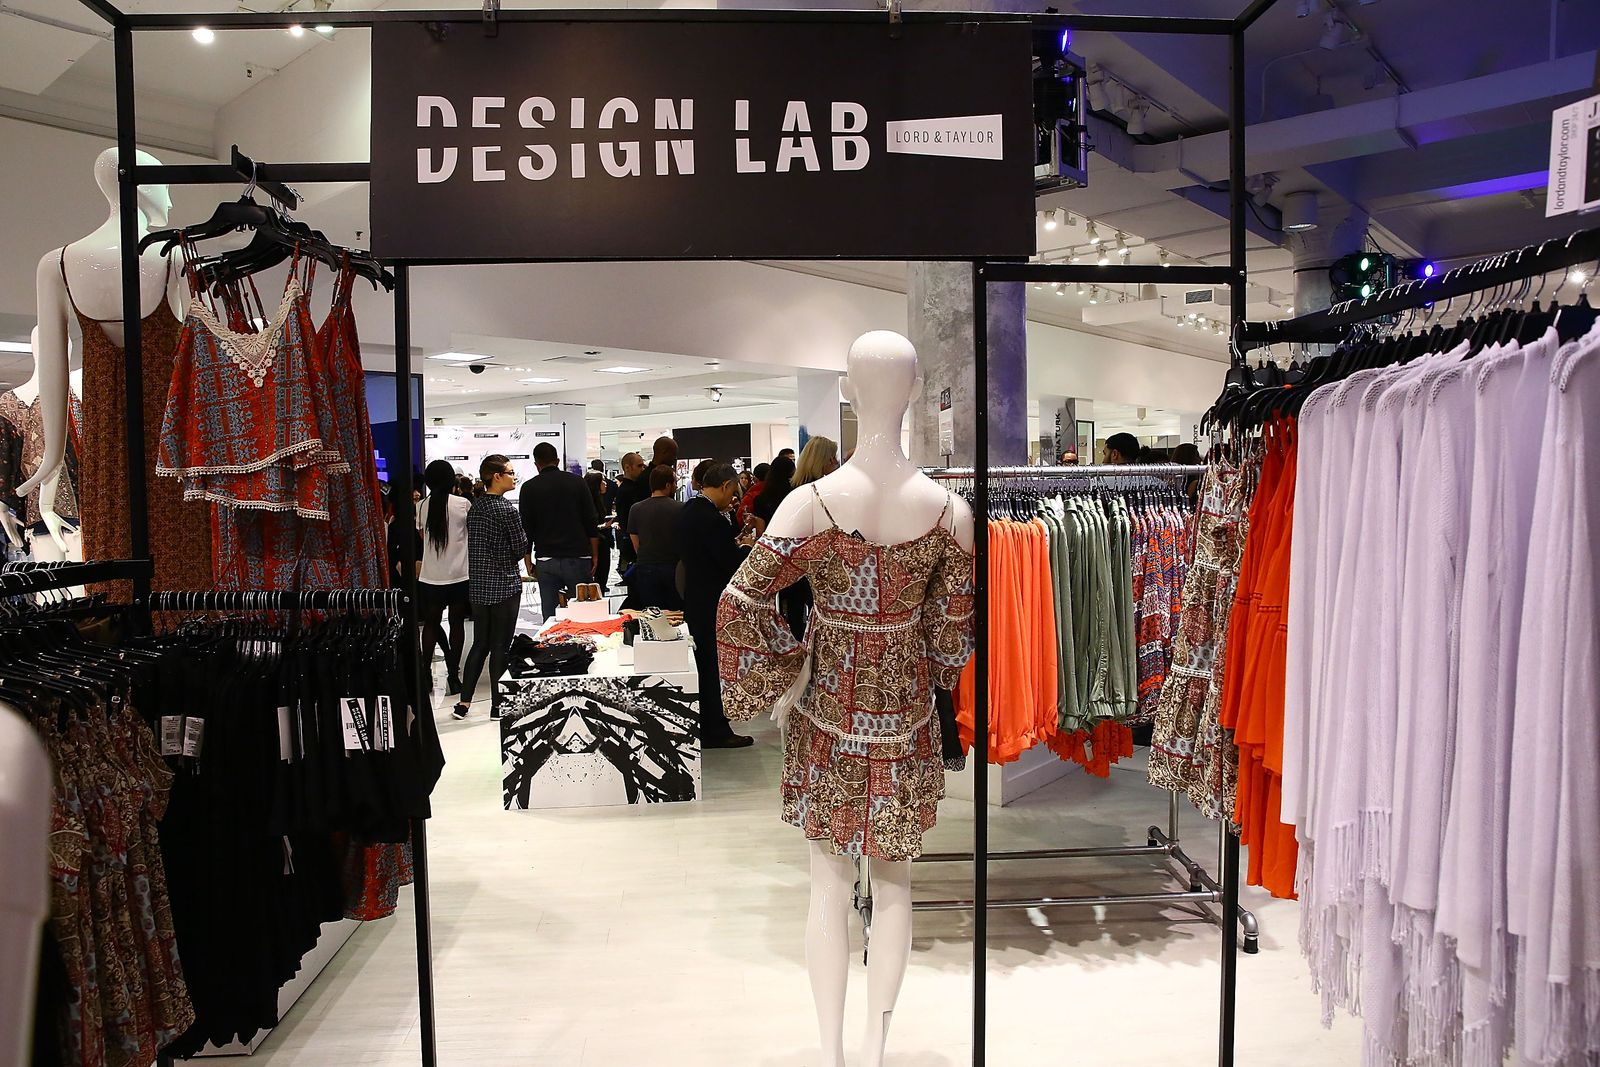 Lord & Taylor; Design Lab In-Store